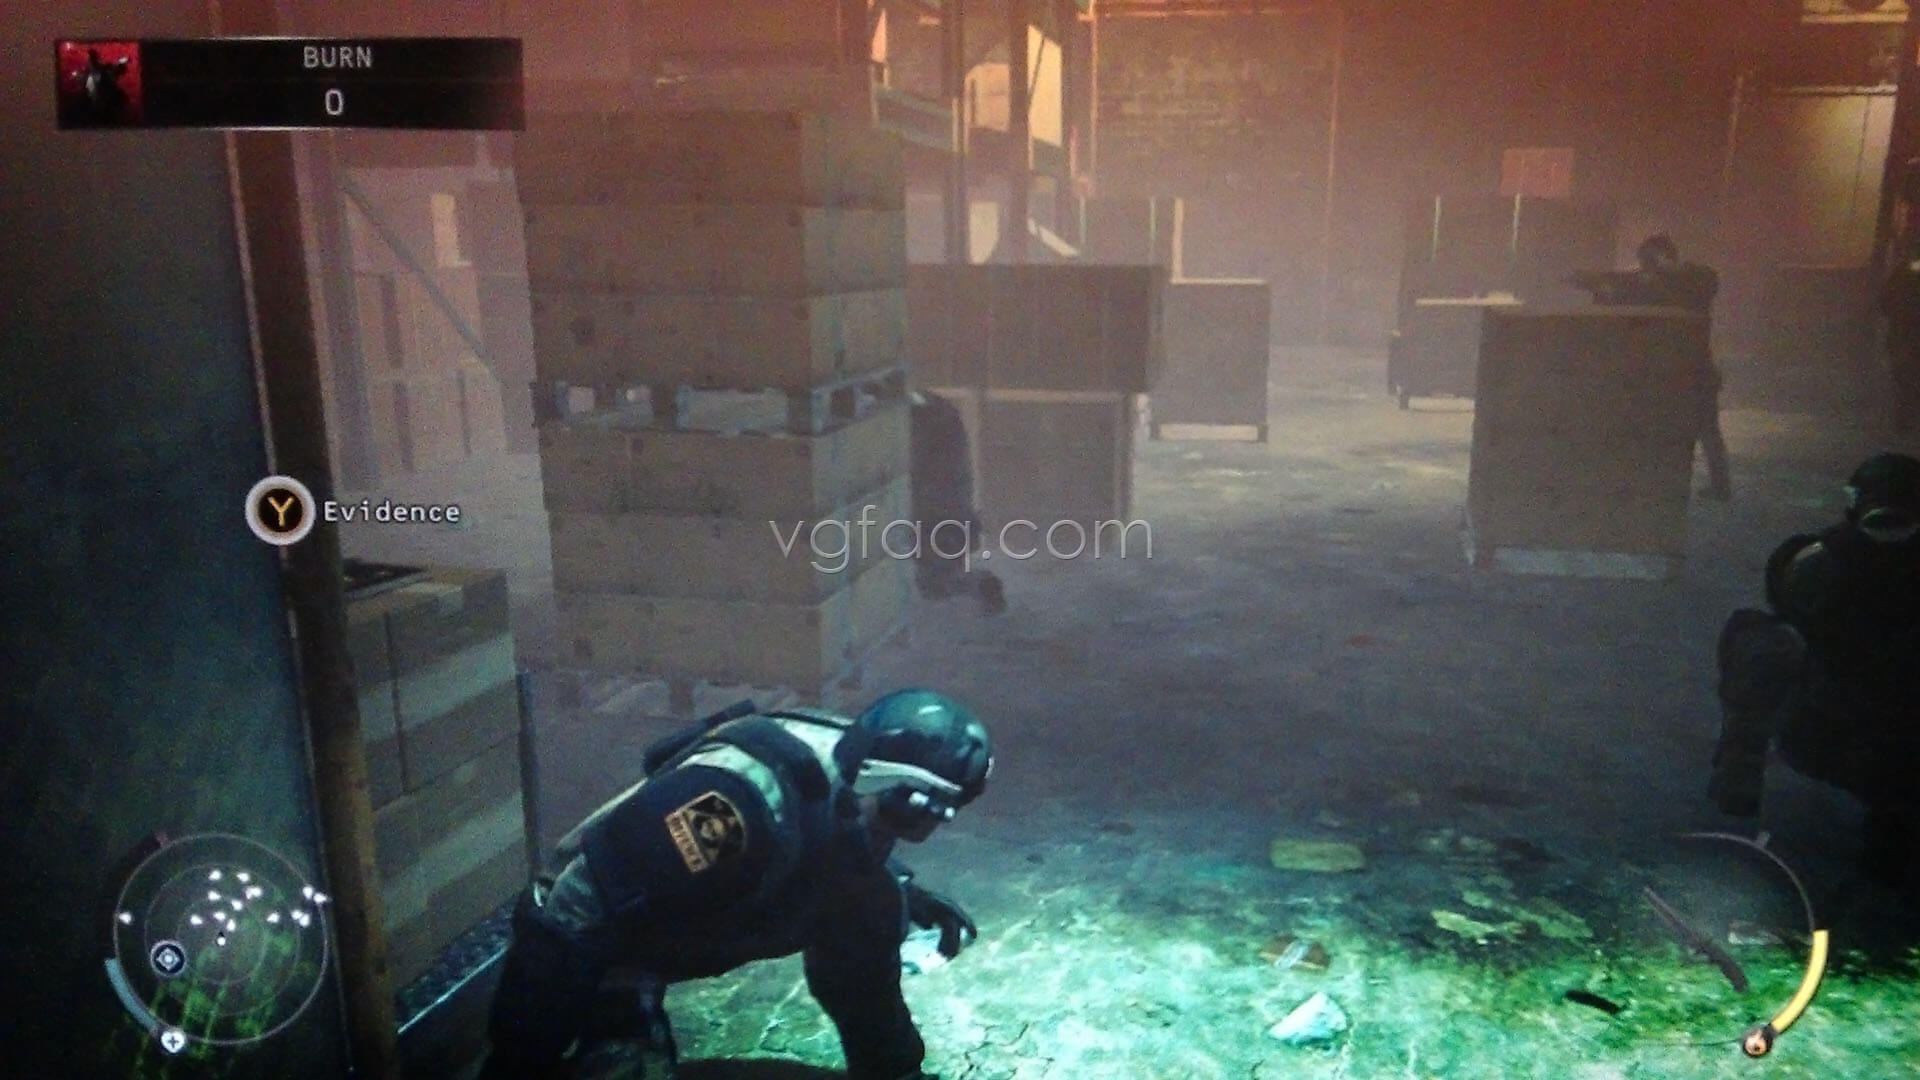 Hitman Absolution Evidence Locations Guide - Information ...